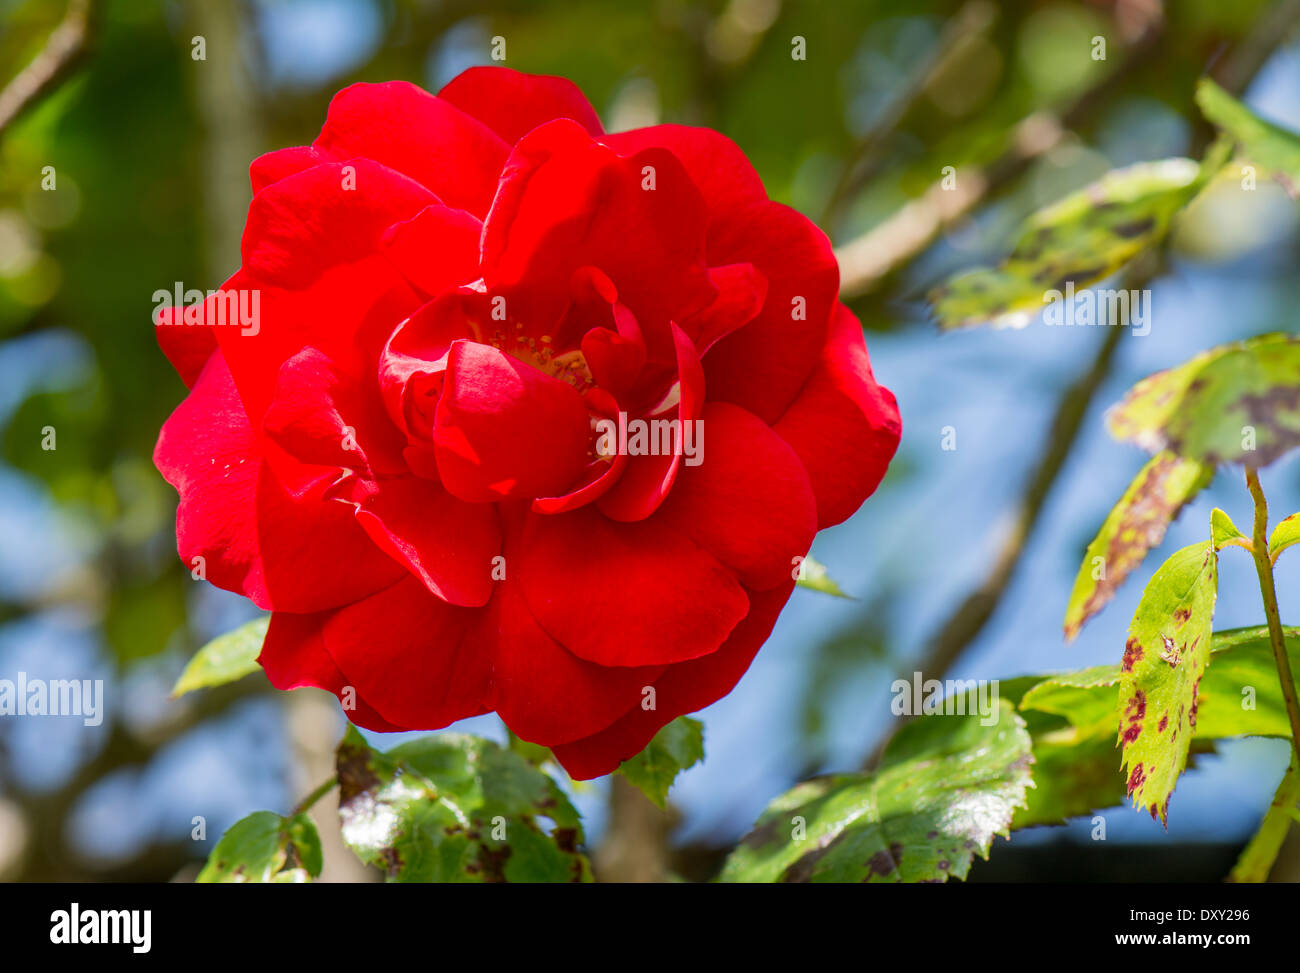 Red rose - Close up view - Stock Image